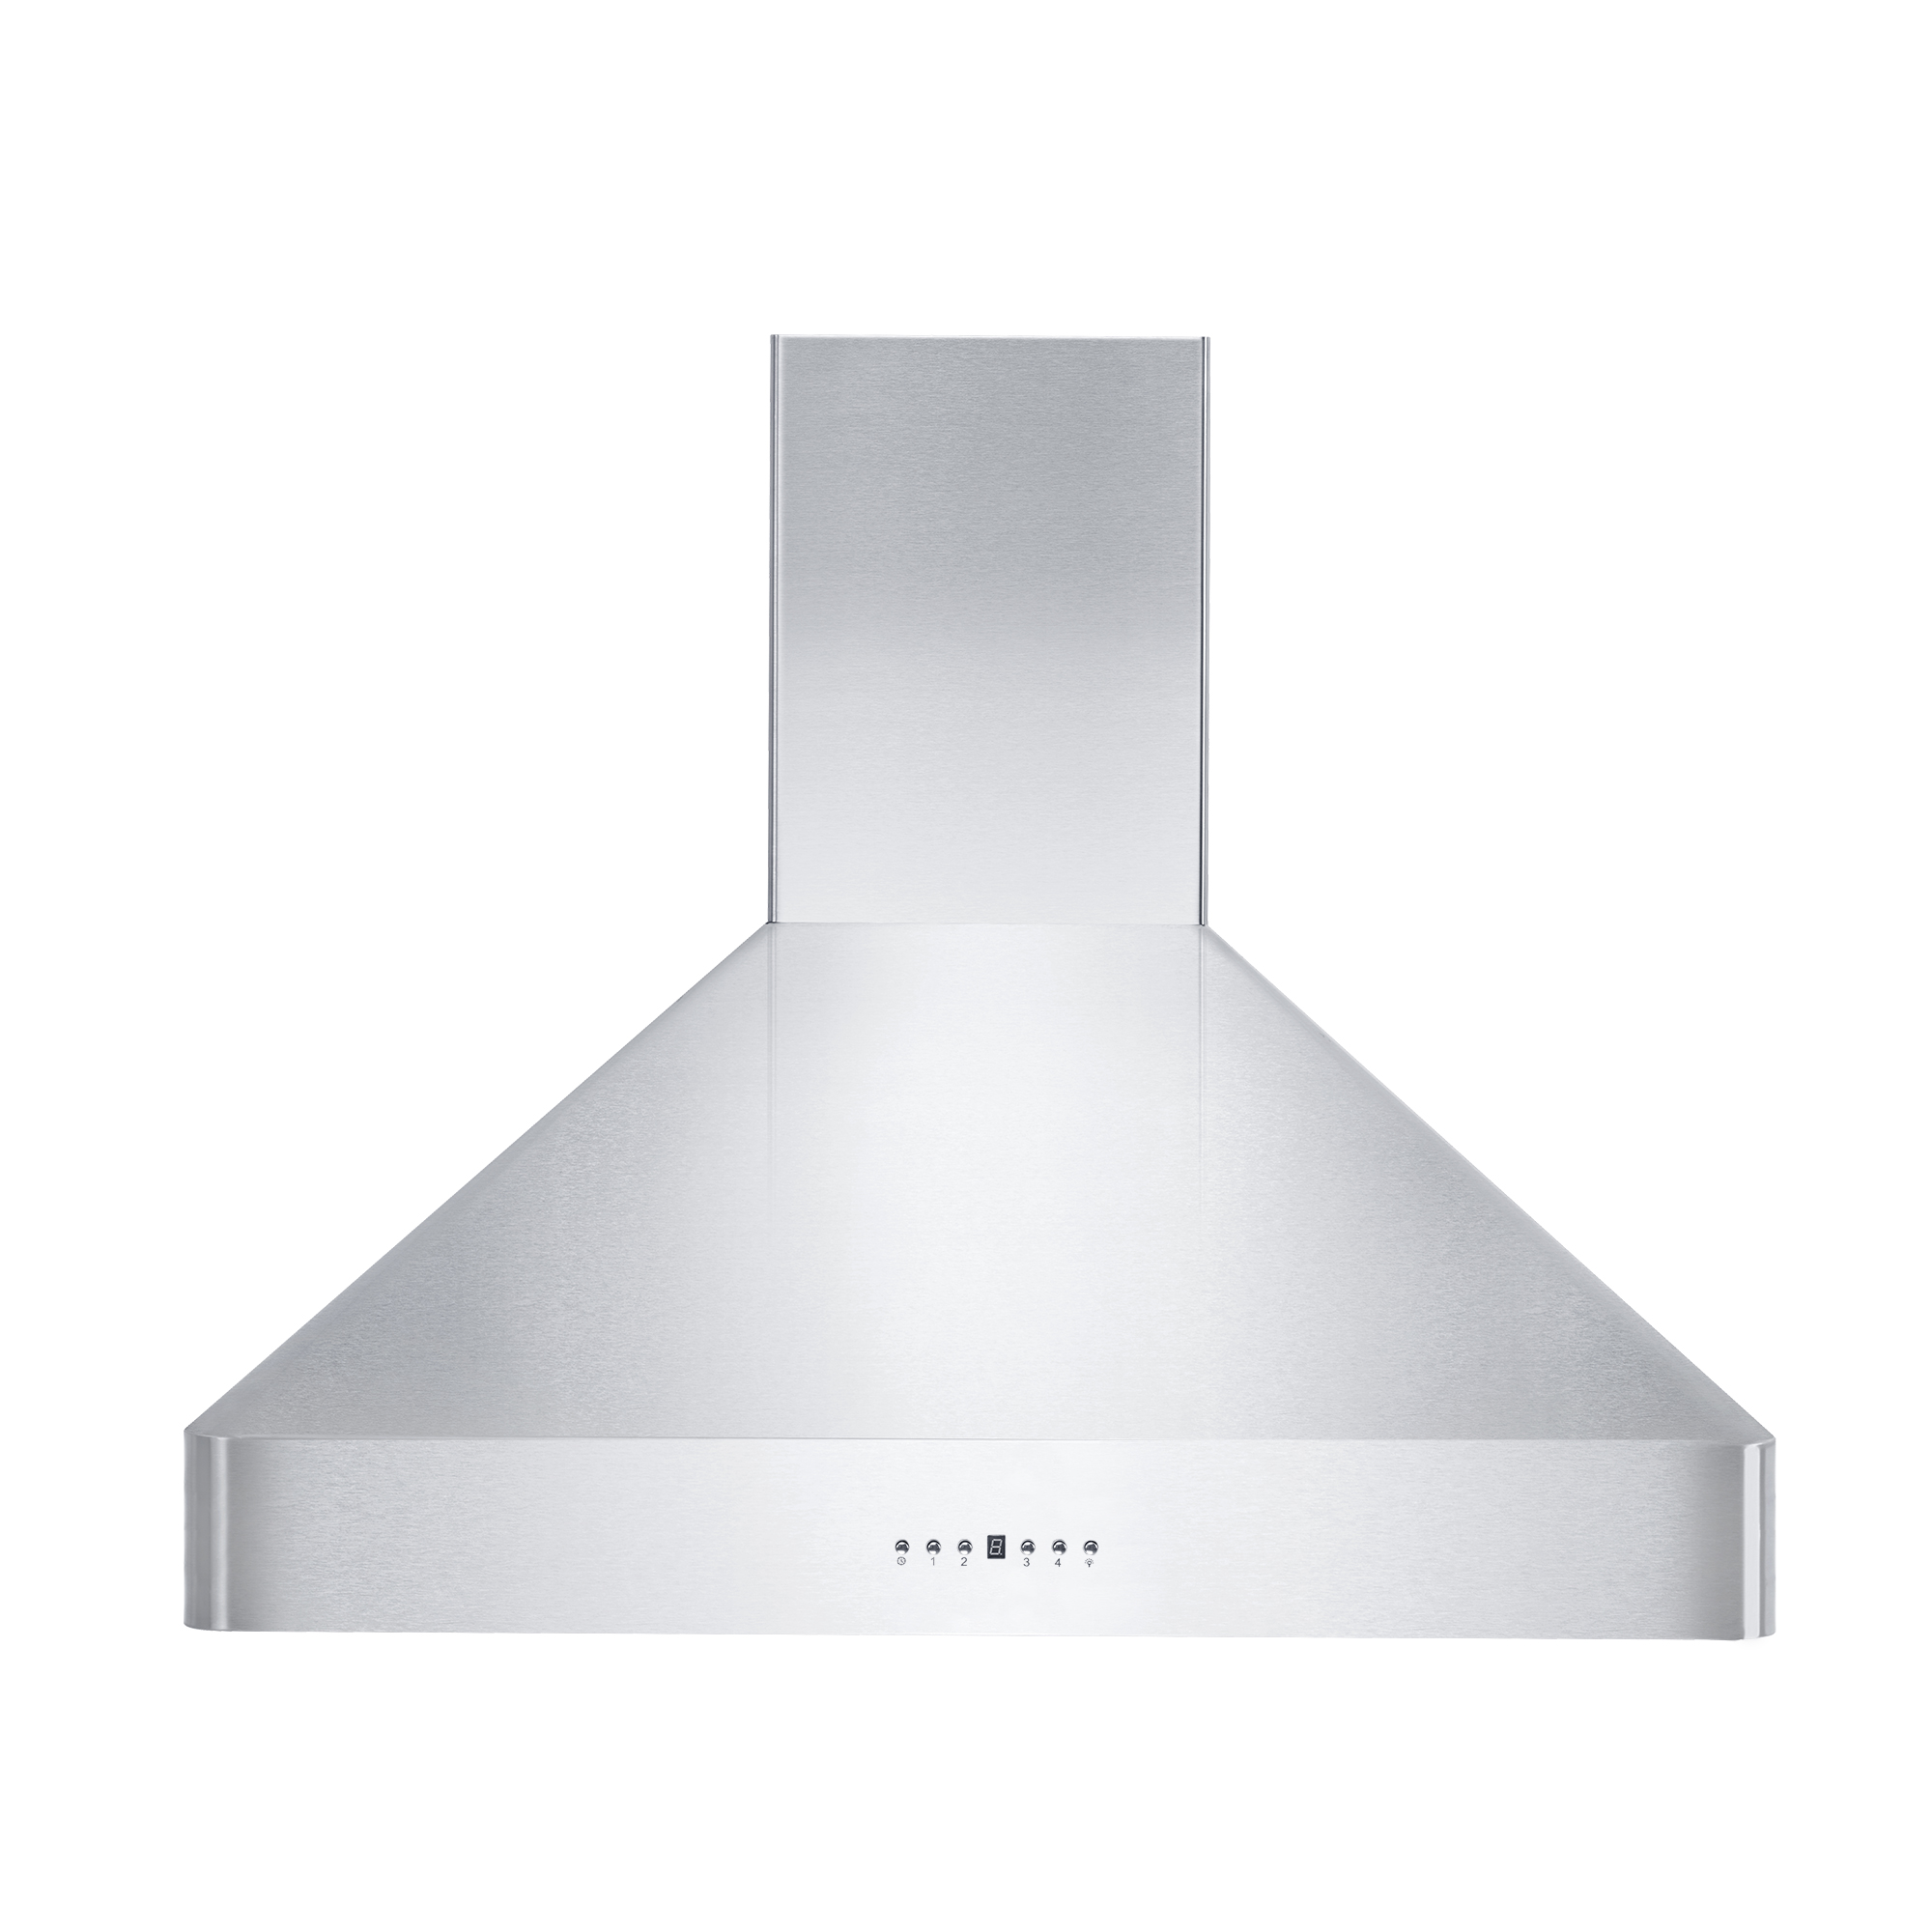 zline-stainless-steel-wall-mounted-range-hood-kf2-new-front.jpg